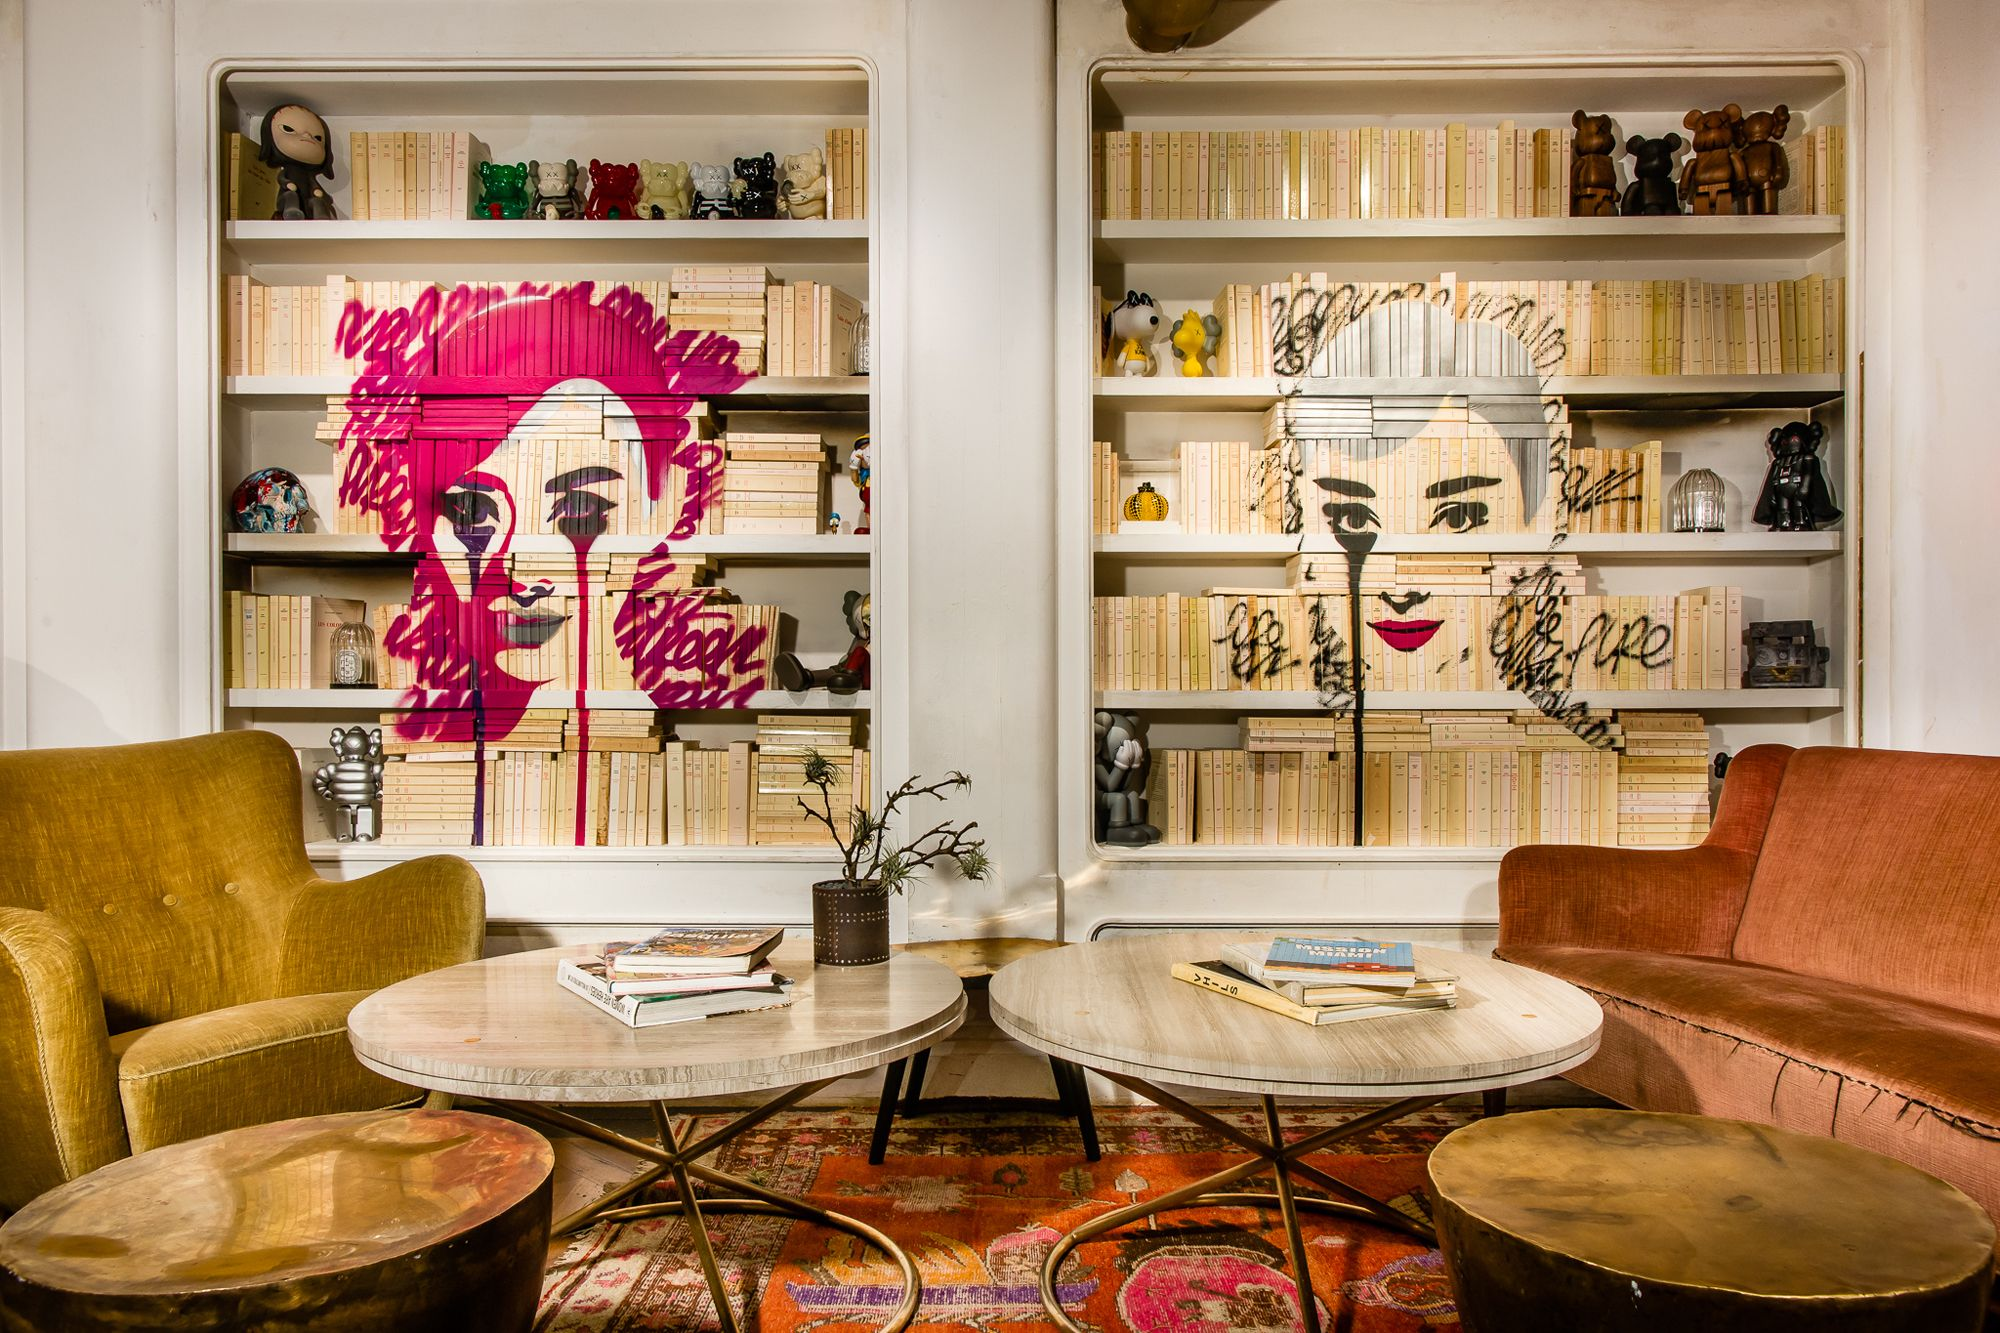 Art-Inspired Restaurants To Try This March